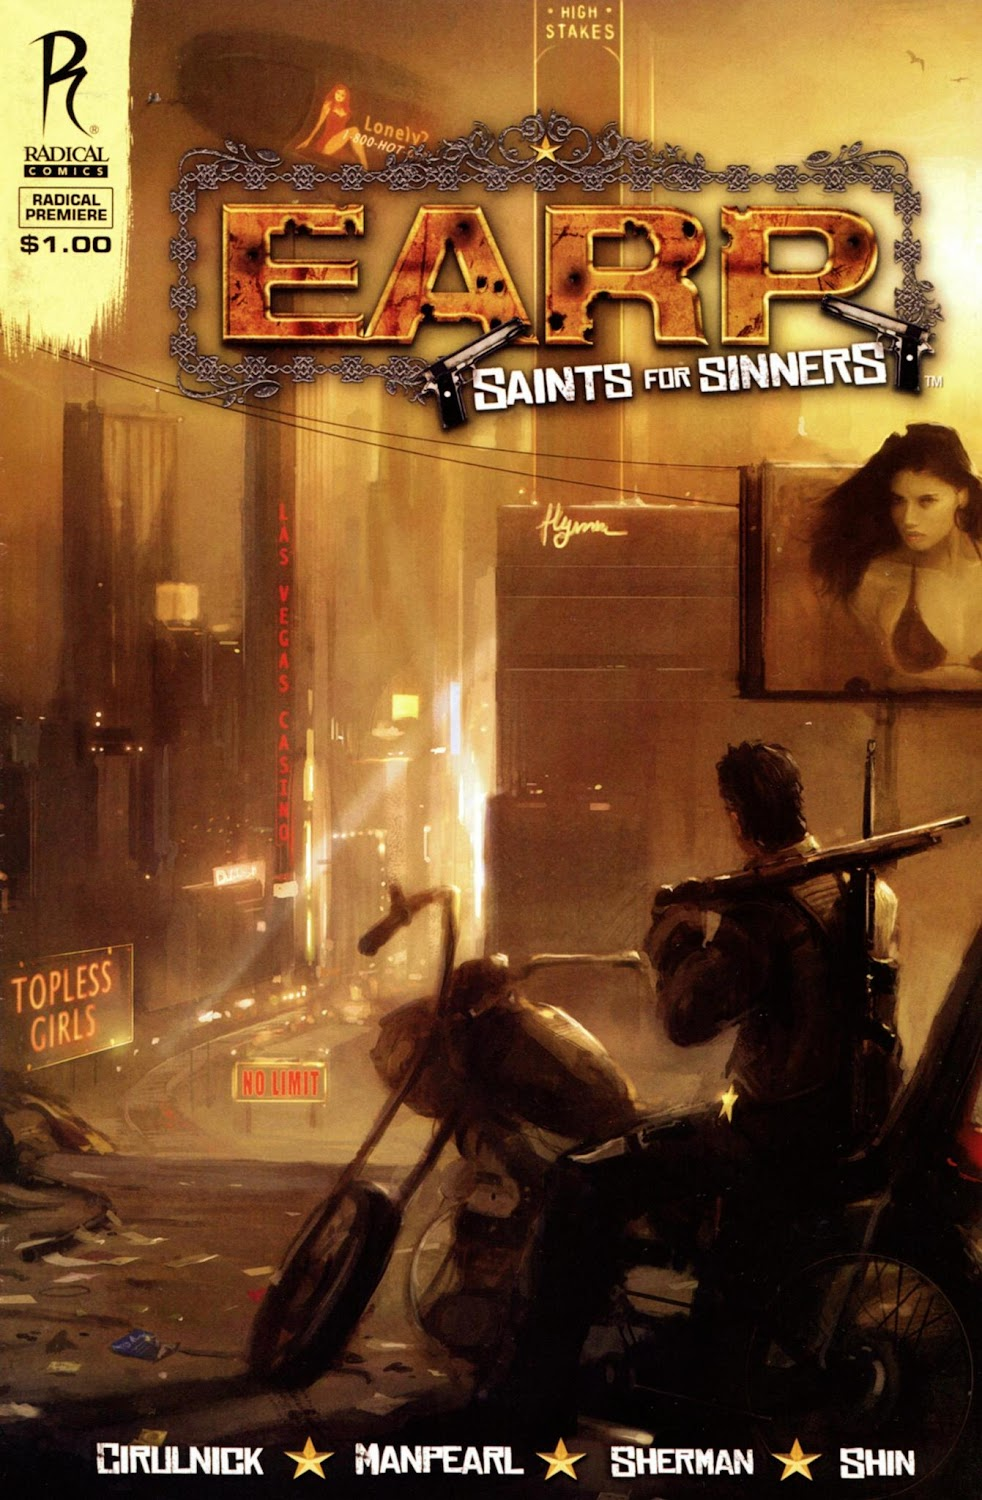 Earp - Saints for Sinners (2010) - complete